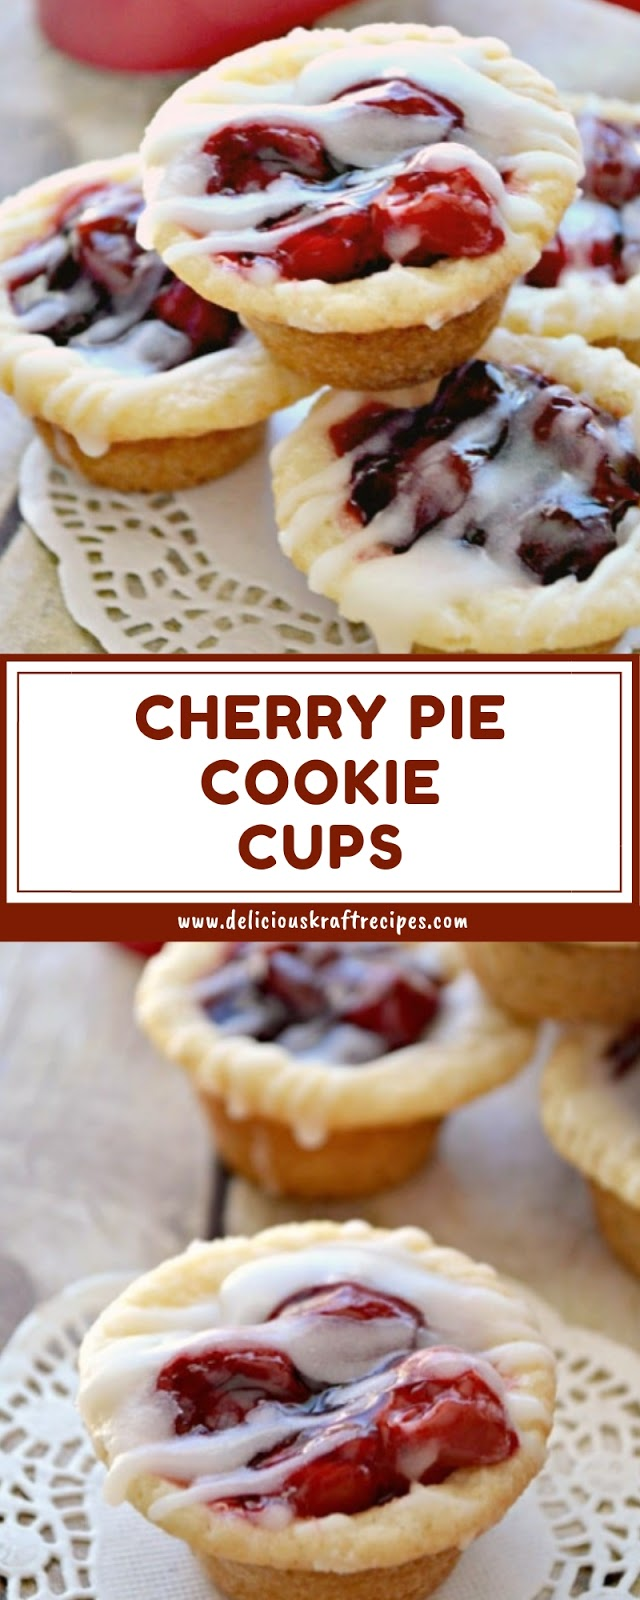 CHERRY PIE COOKIE CUPS